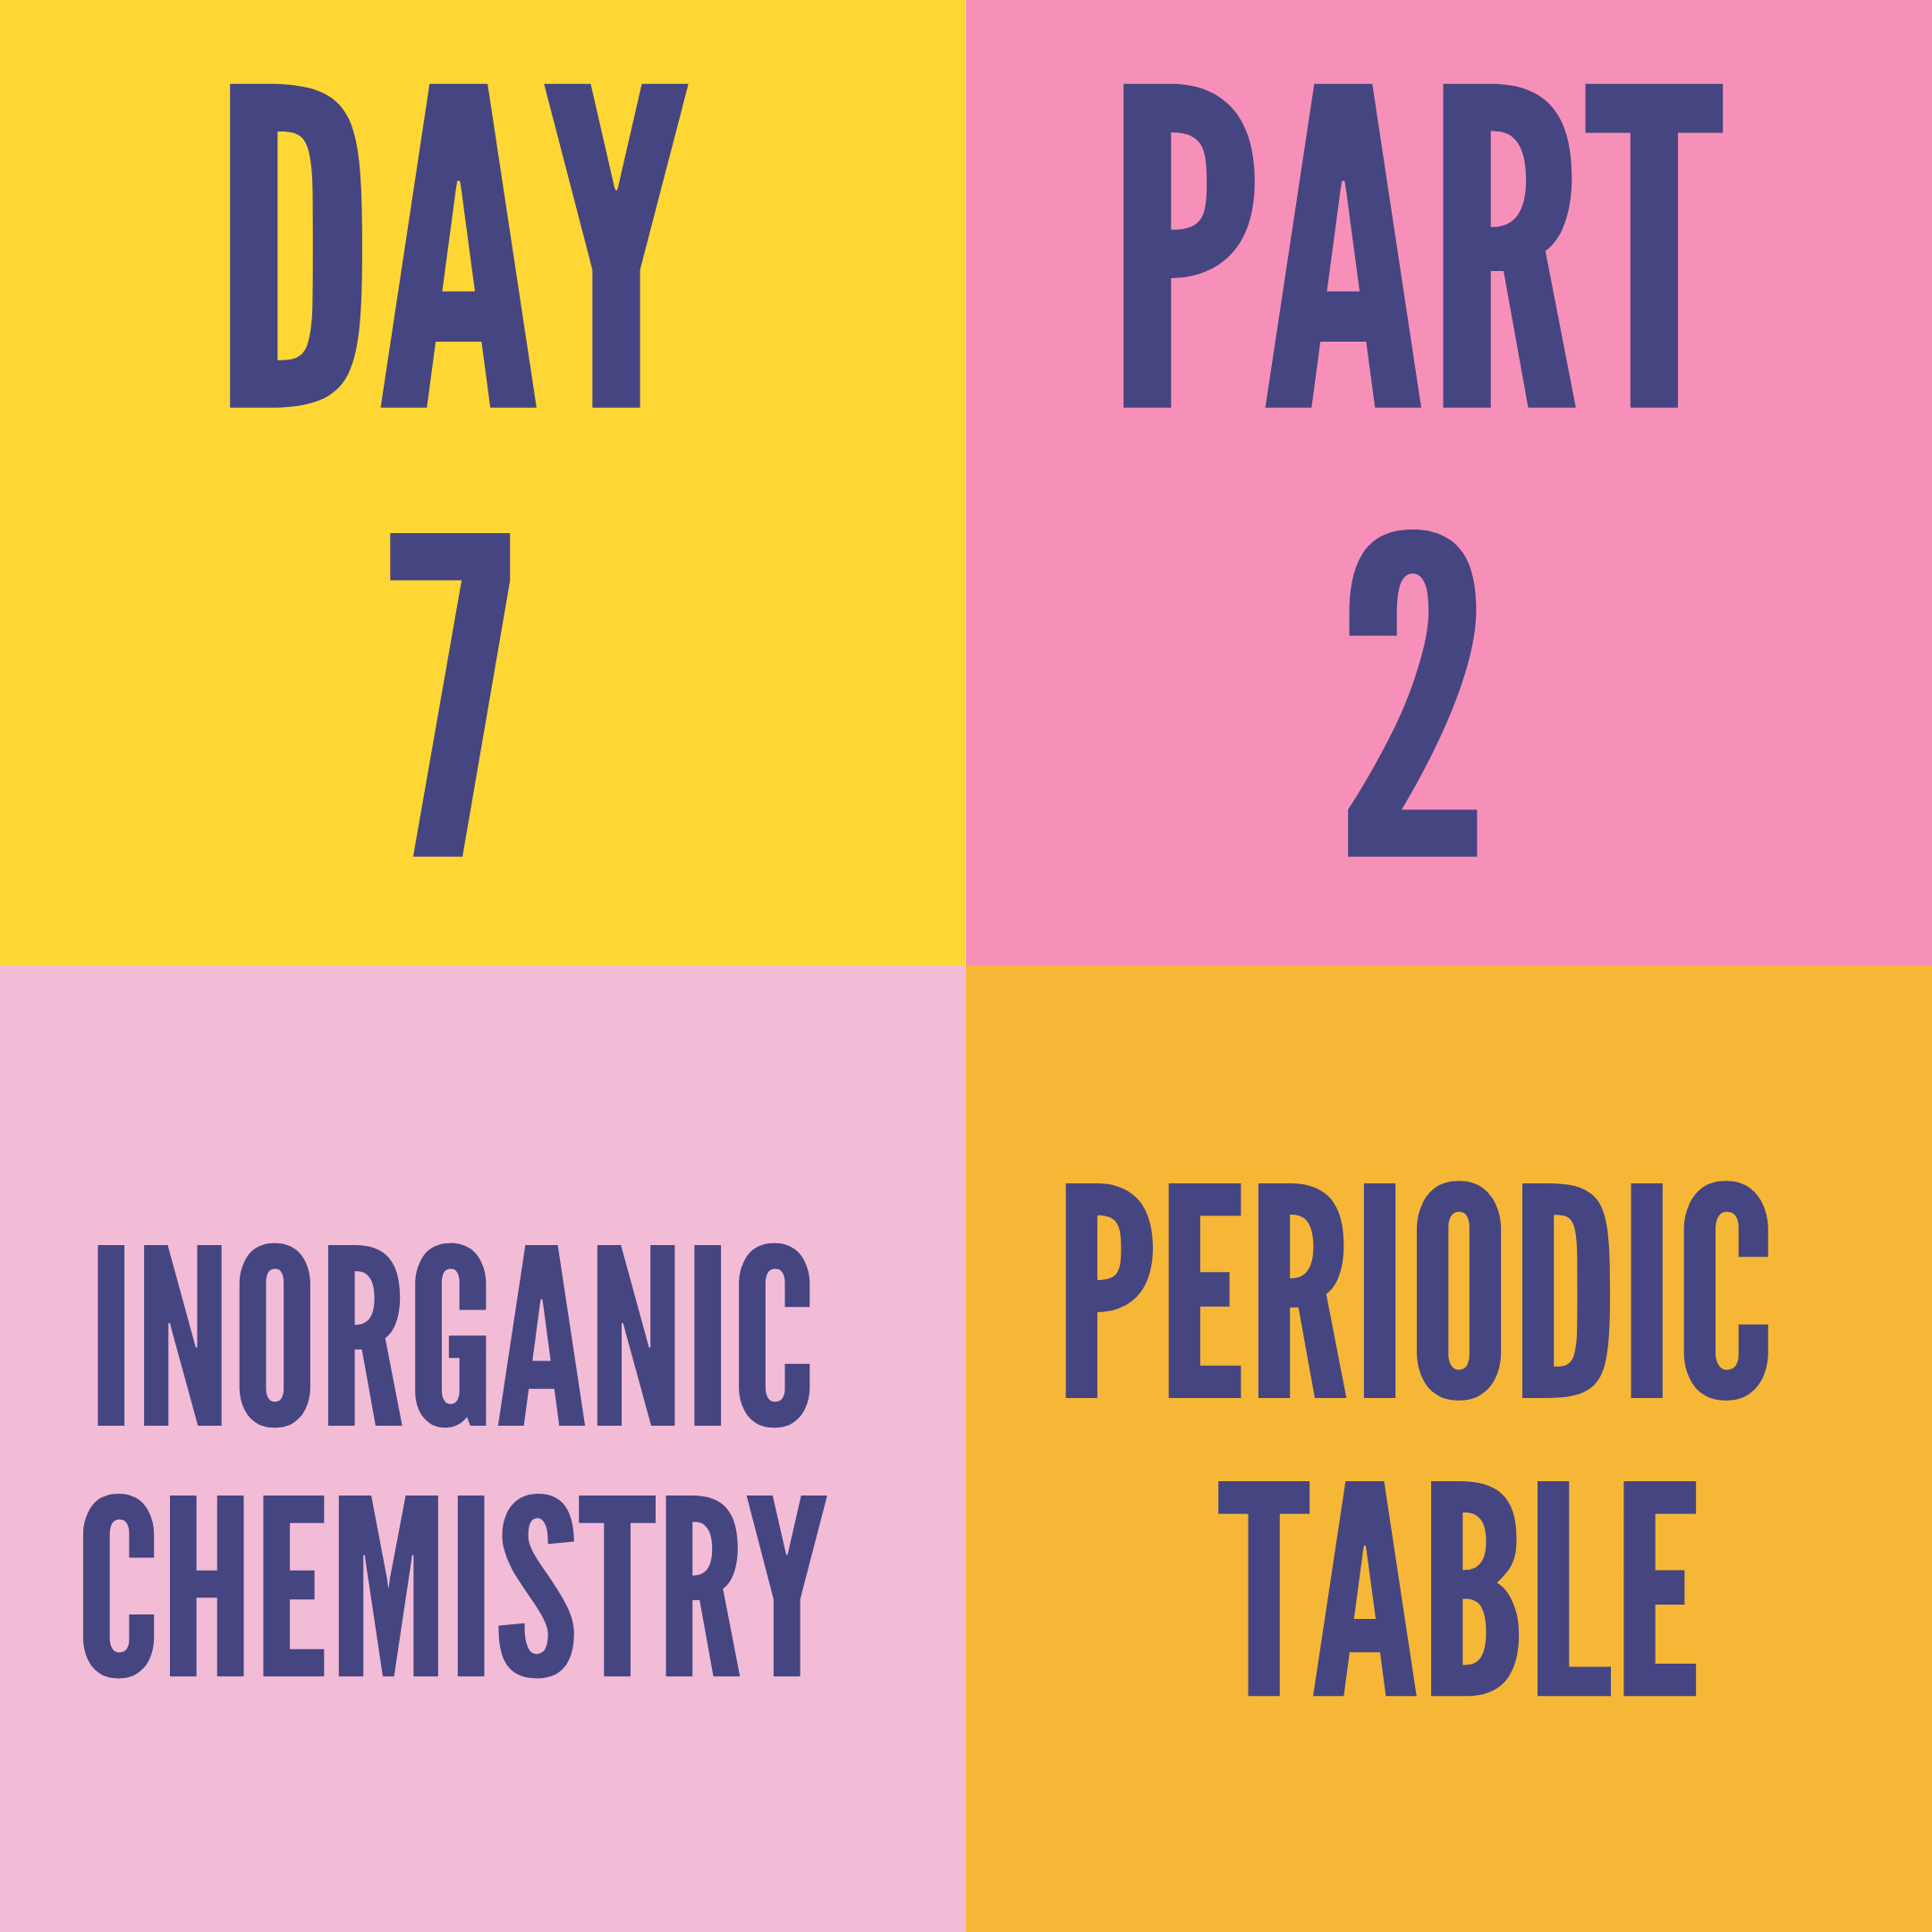 DAY-7 PART-2 PERIODIC TABLE